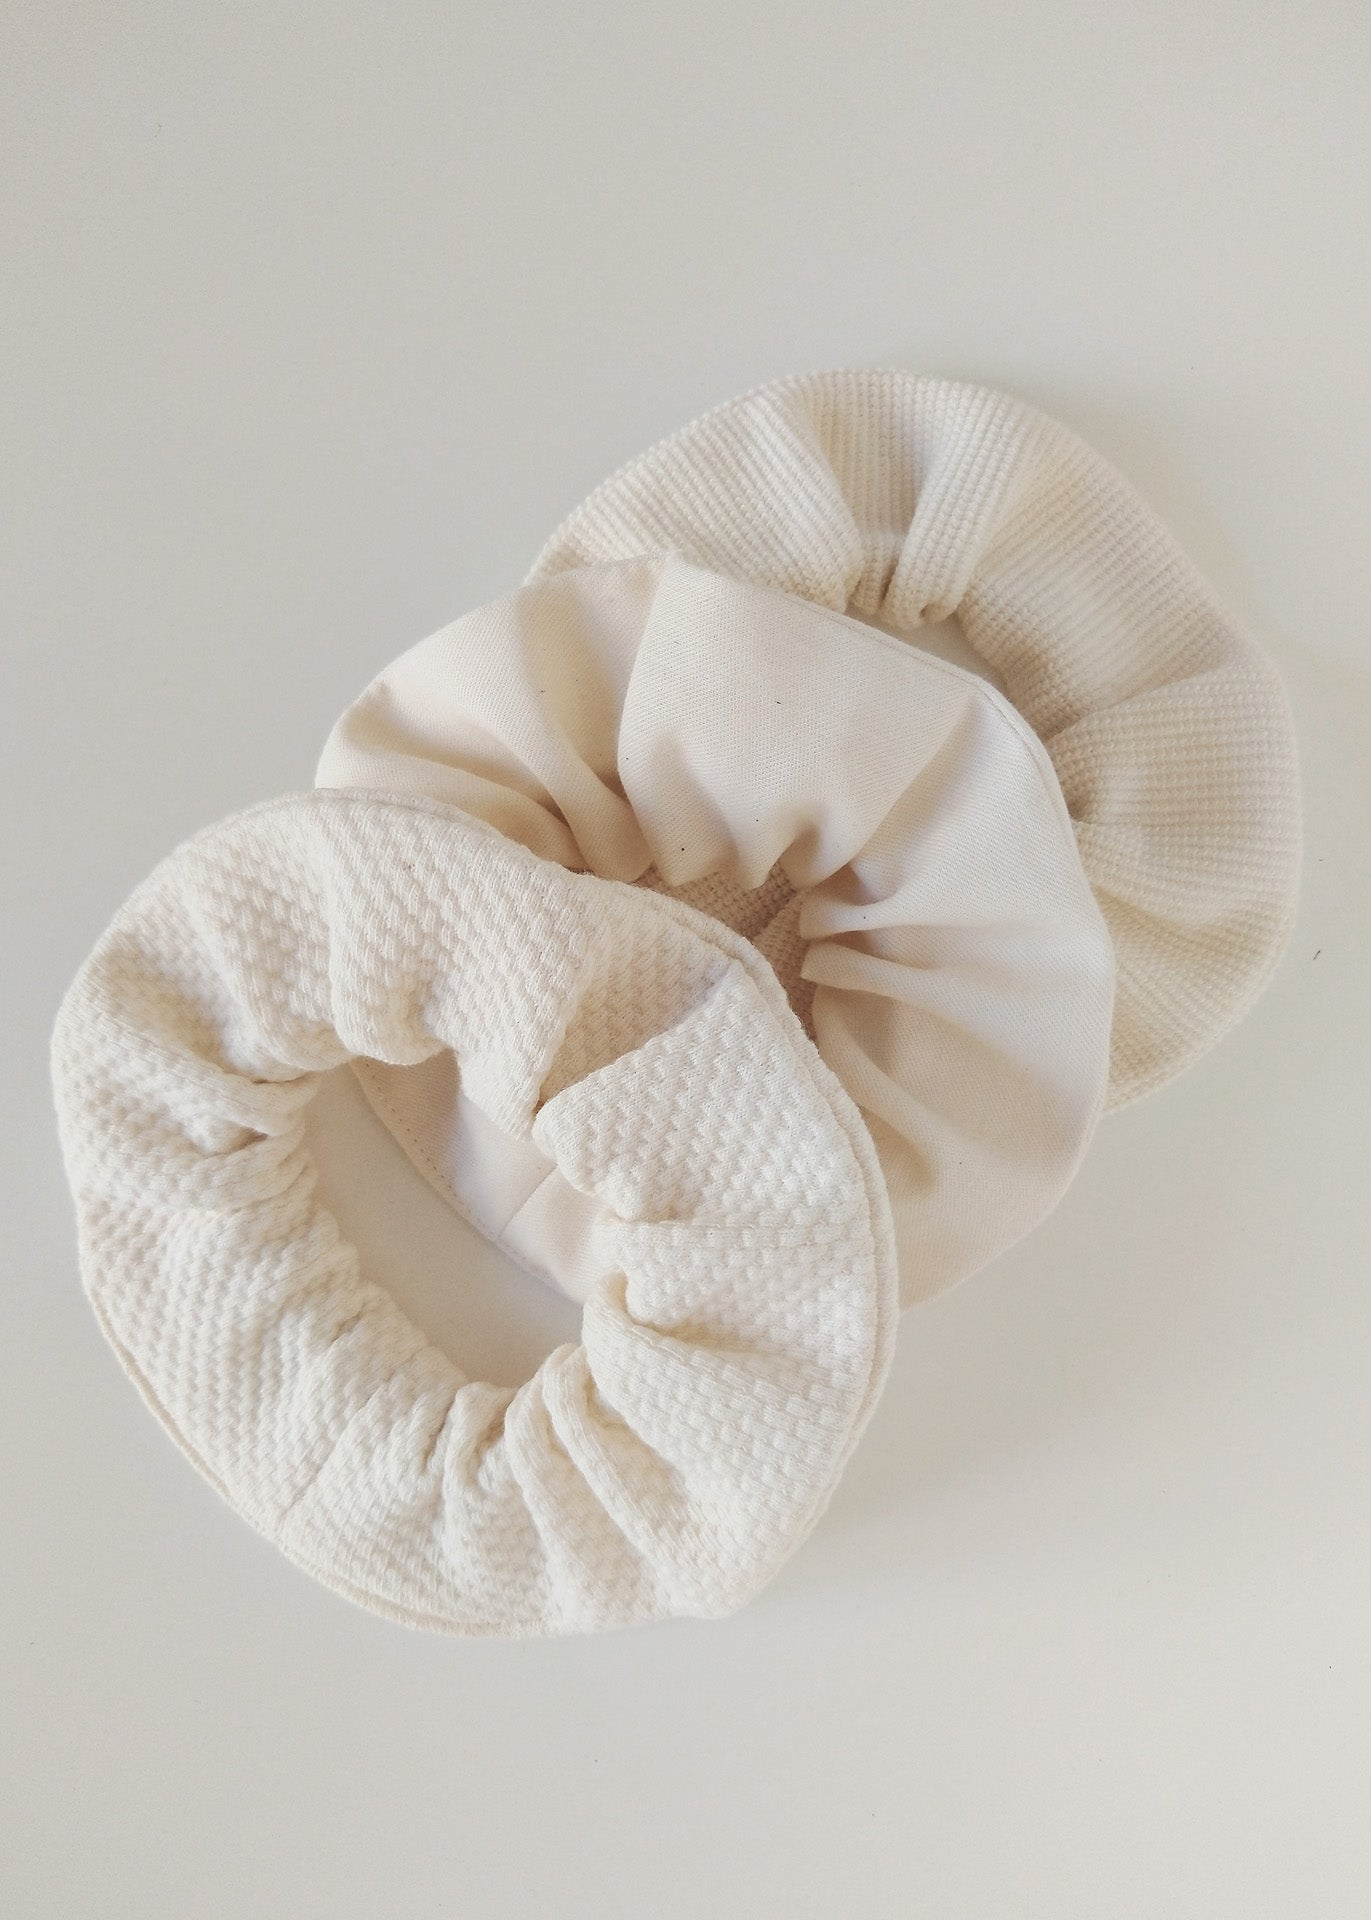 Neva – Scrunchie Set of 3